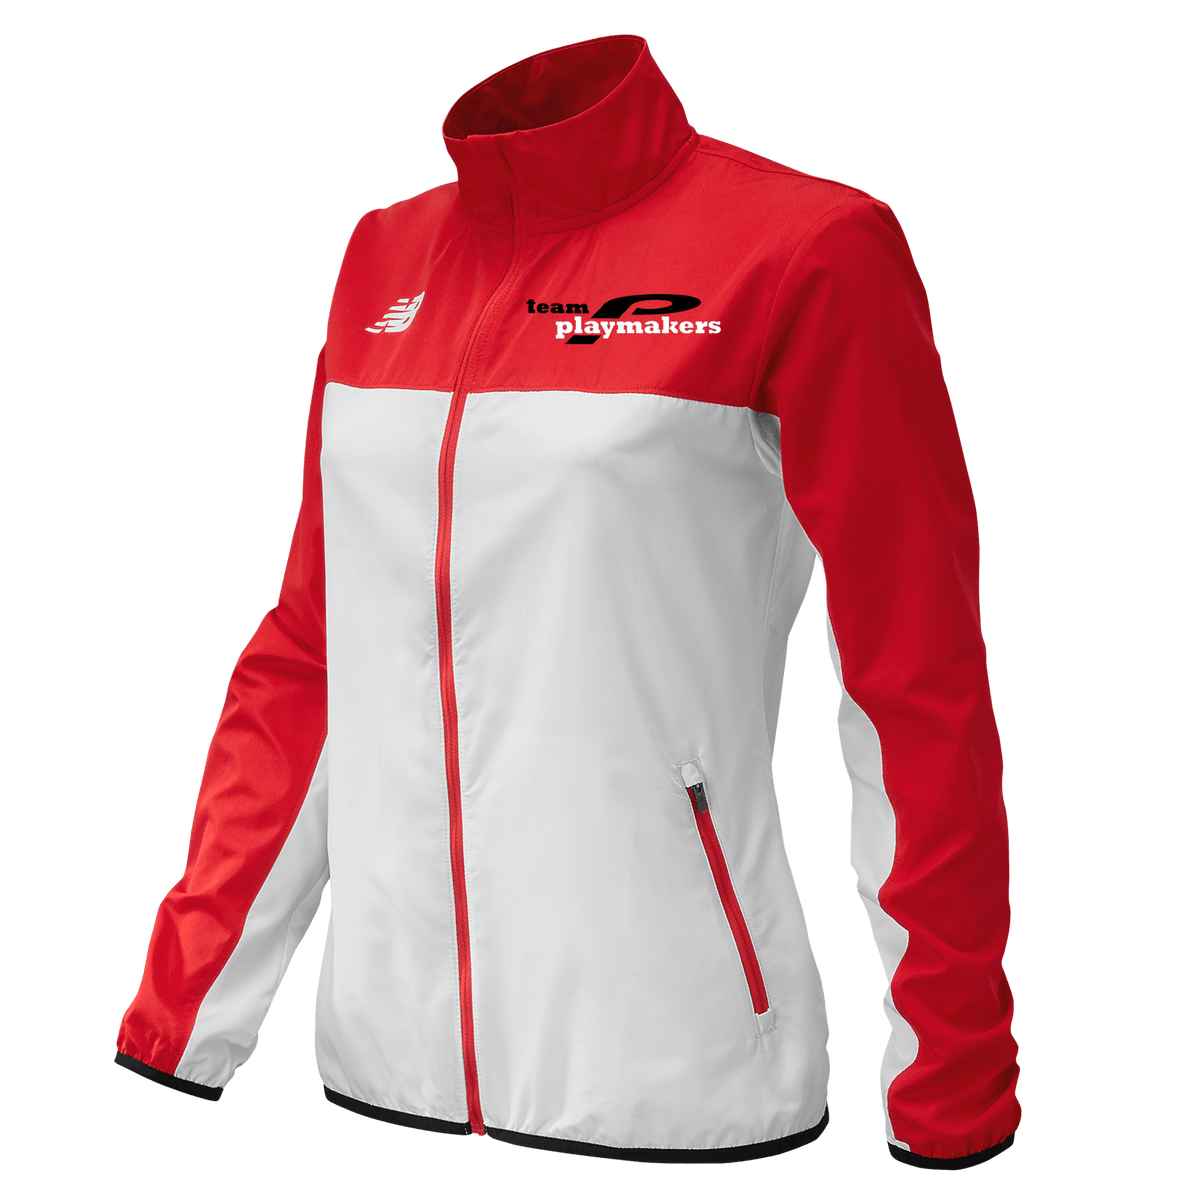 NB Team Playmakers Jacket Red/White (Women)